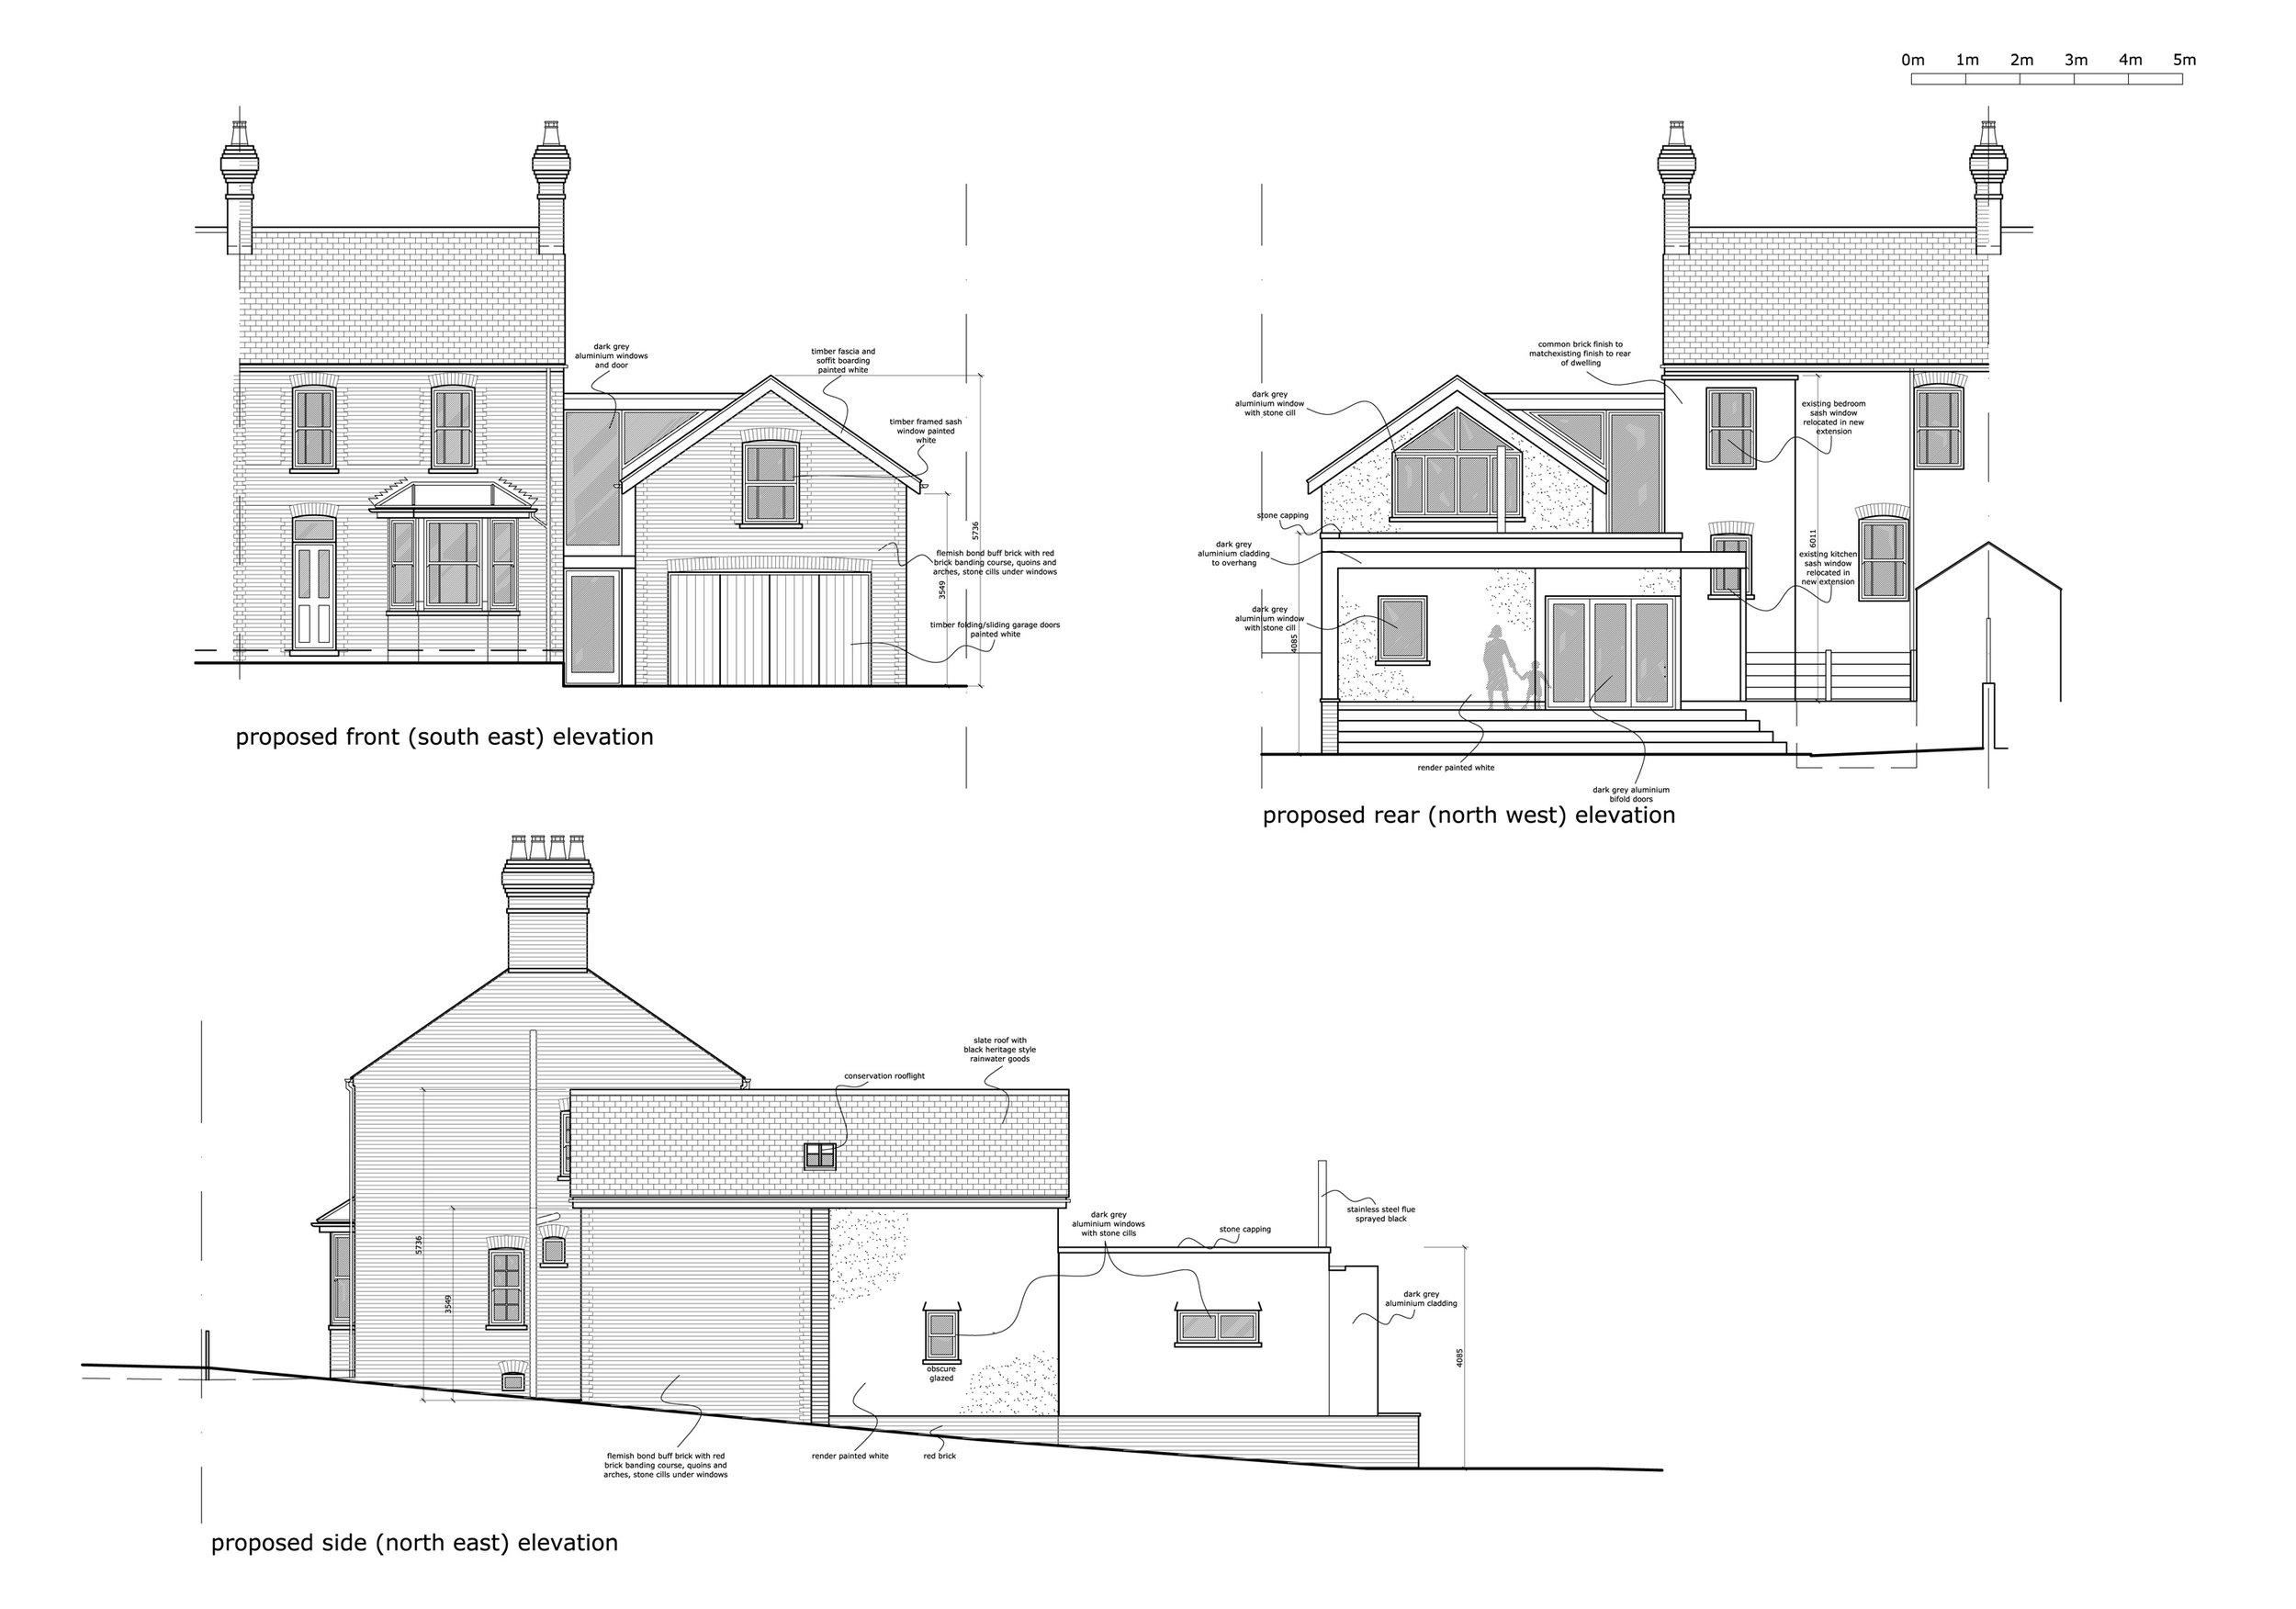 Planning approved elevation drawing